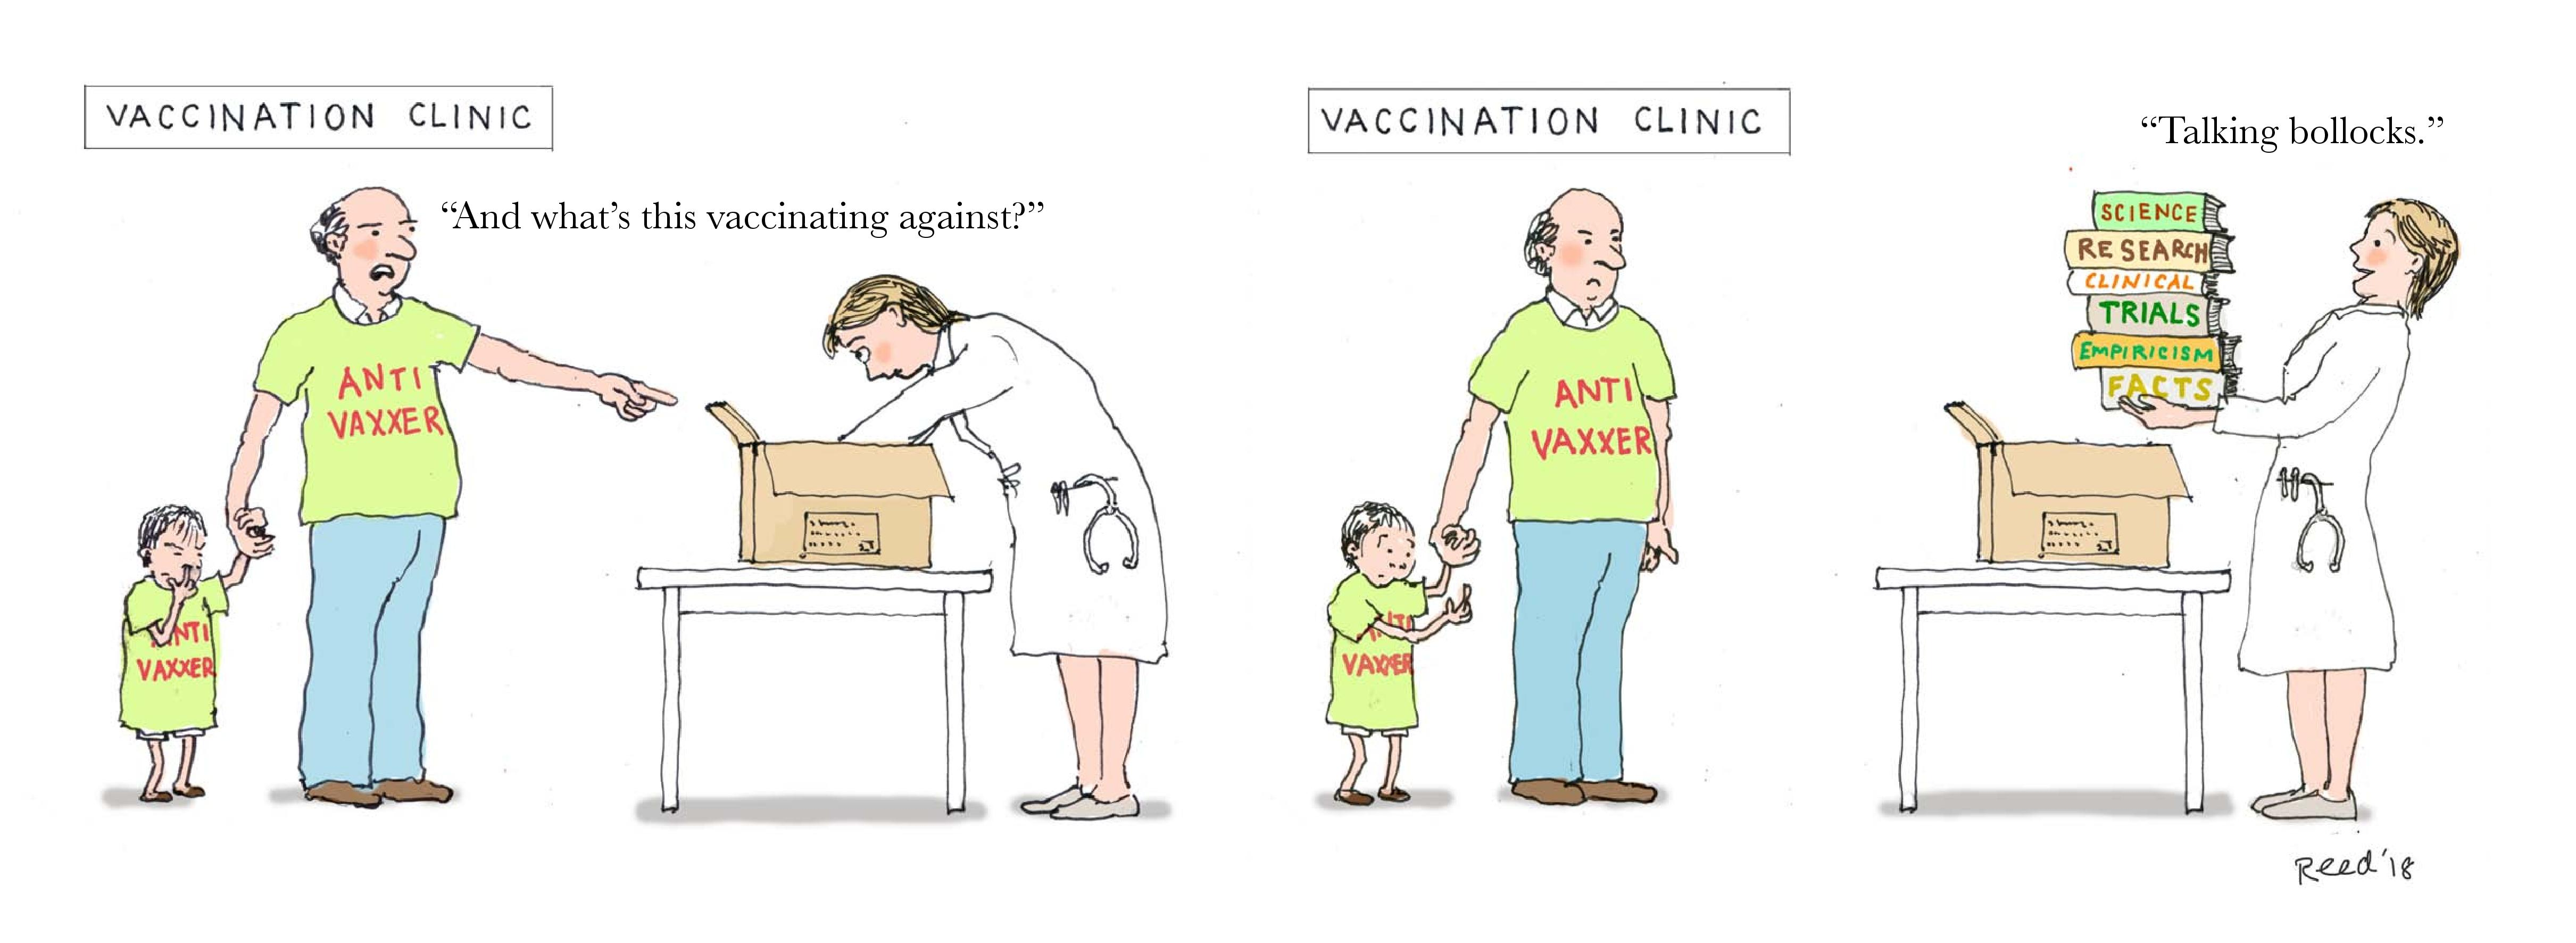 Vaccination cartoon horizontal-3-page-001.jpg